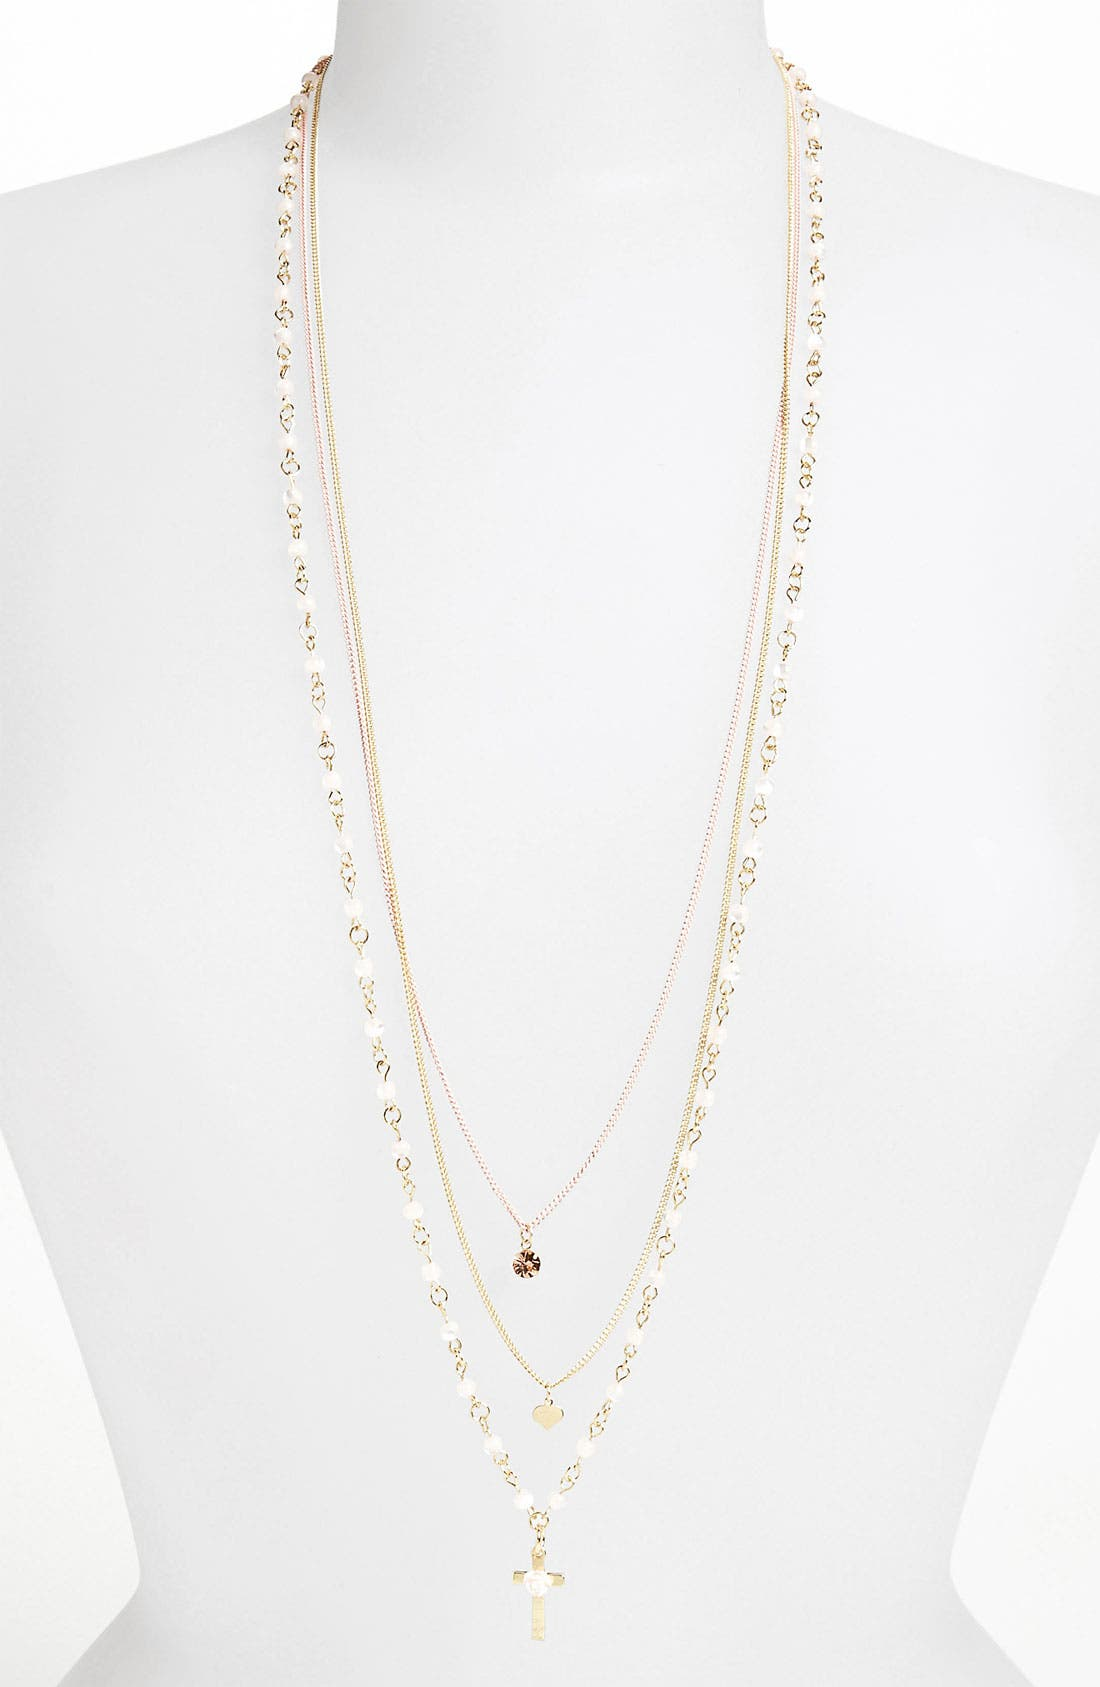 Main Image - Topshop '3 Row Charm' Multistrand Necklace